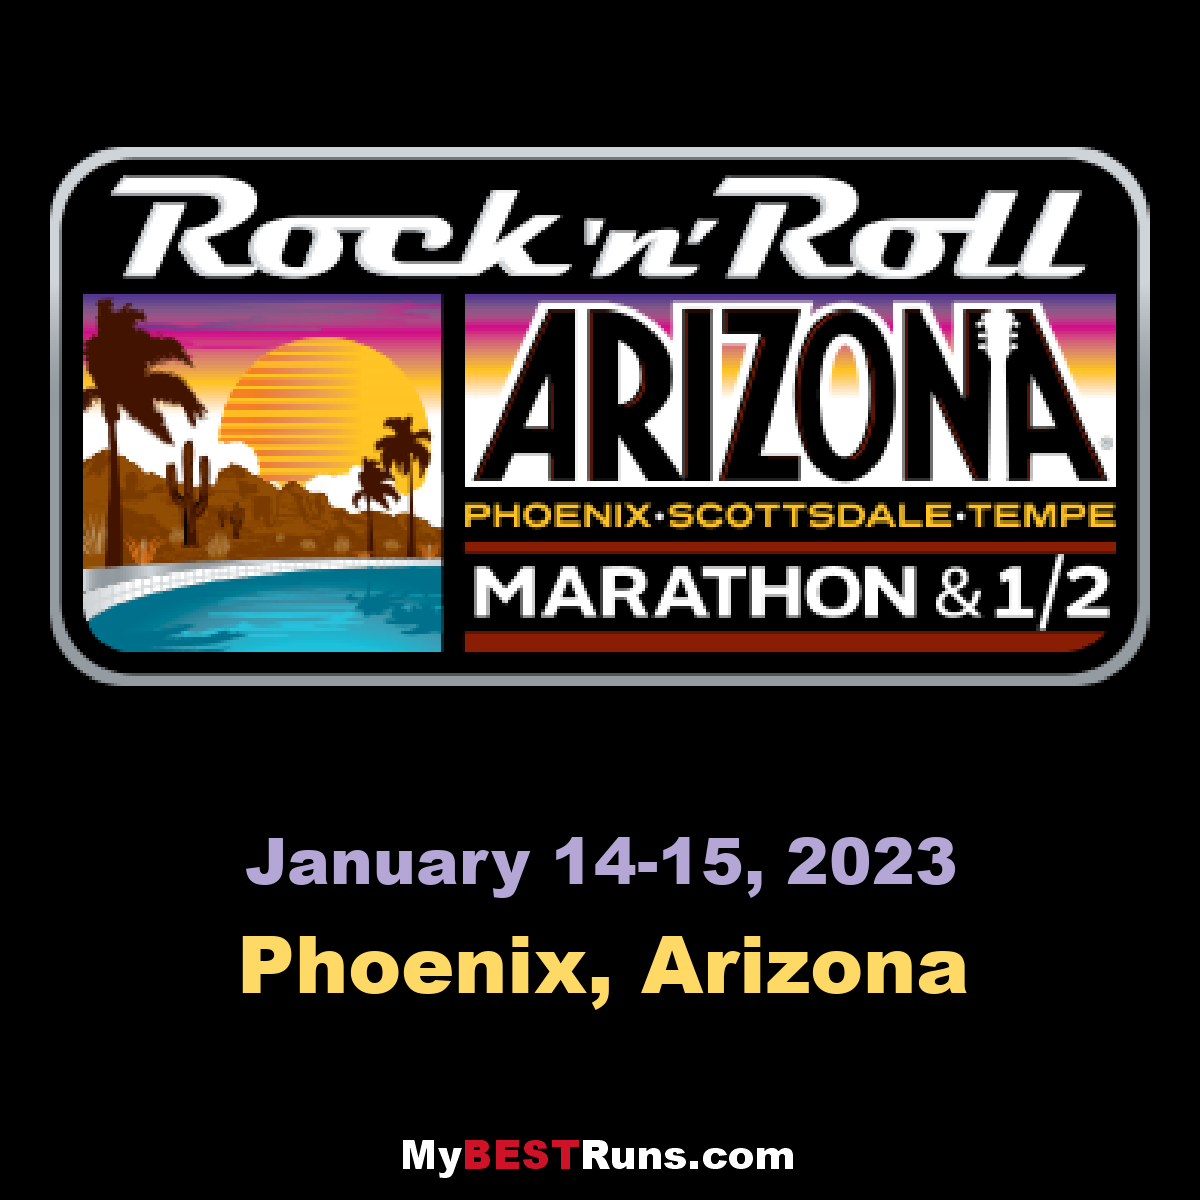 Rock N Roll Arizona Marathon